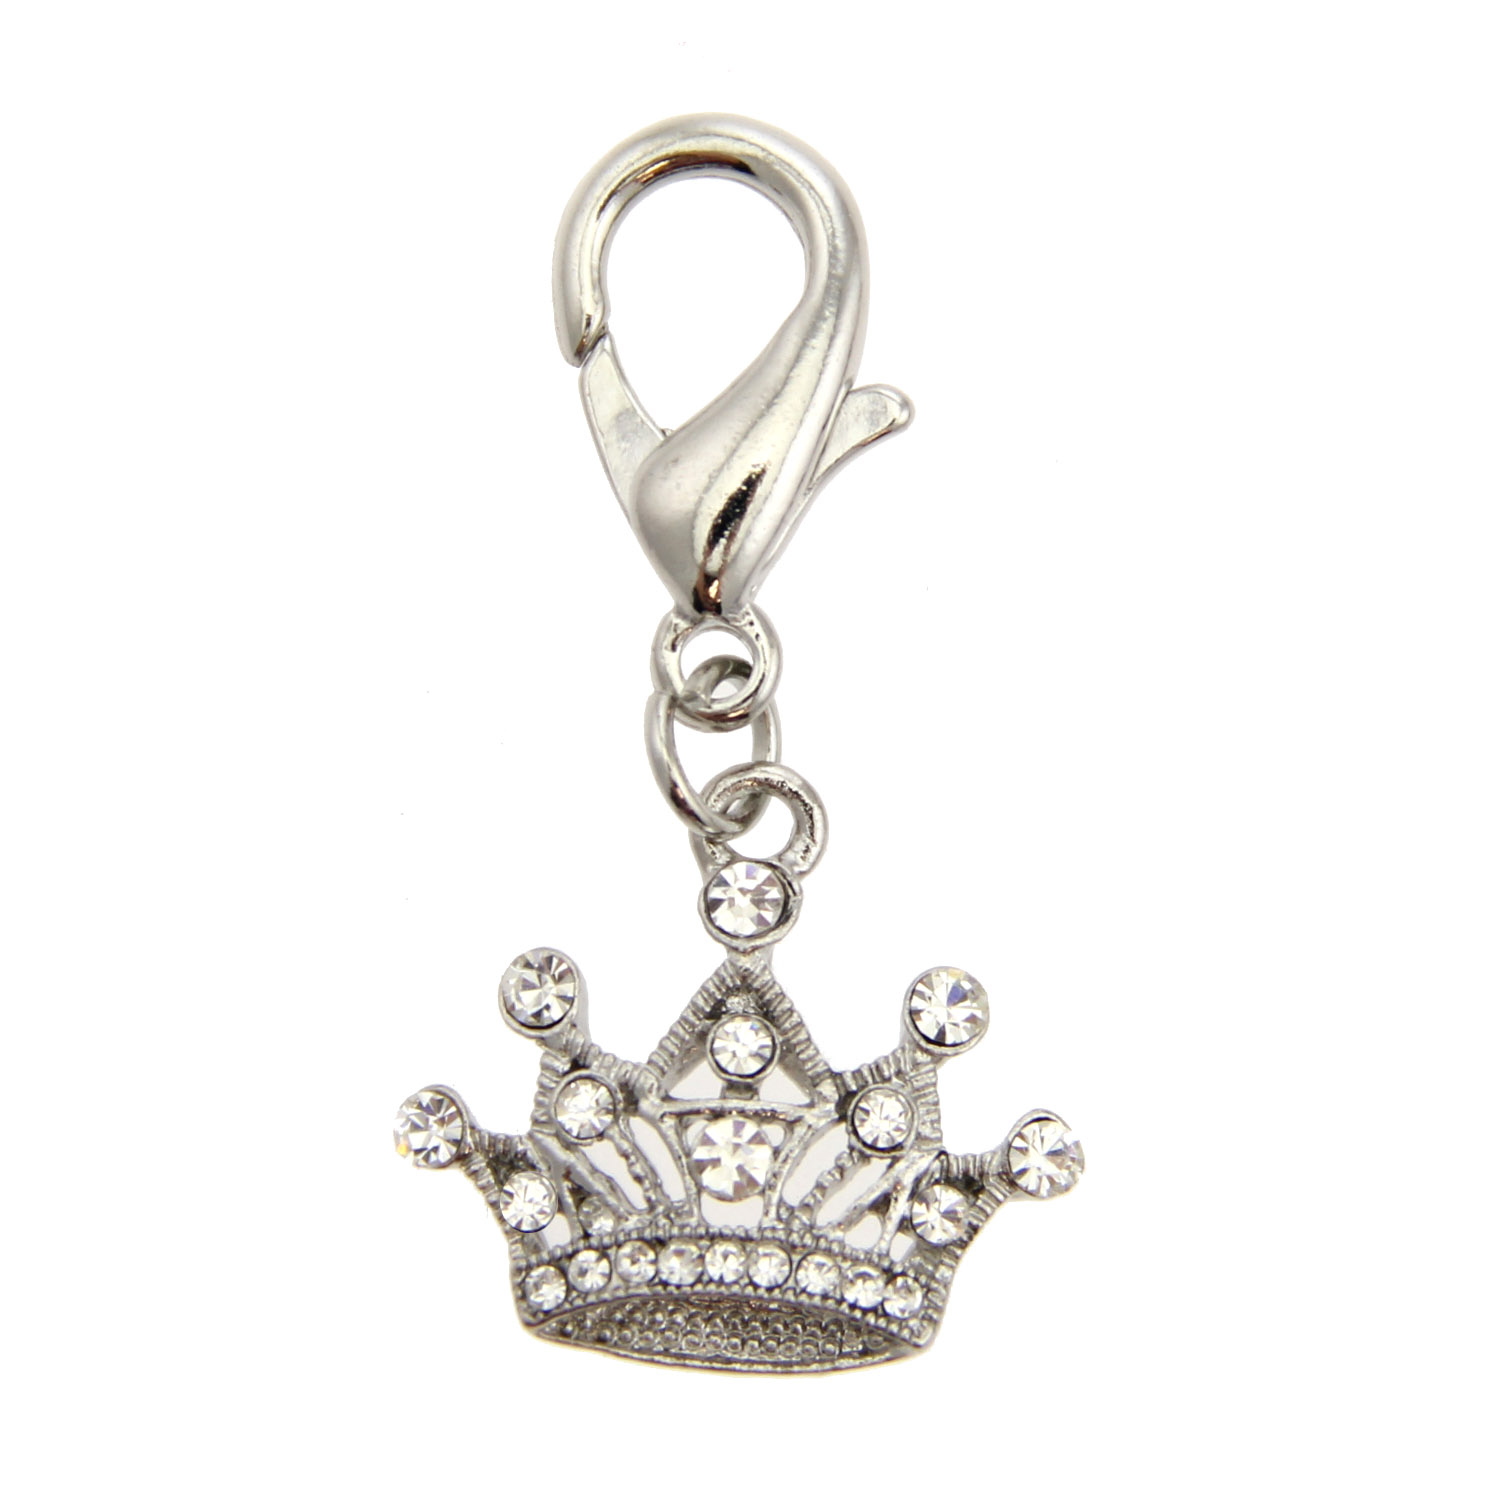 Royal Crown D-Ring Pet Collar Charm by foufou Dog - Clear